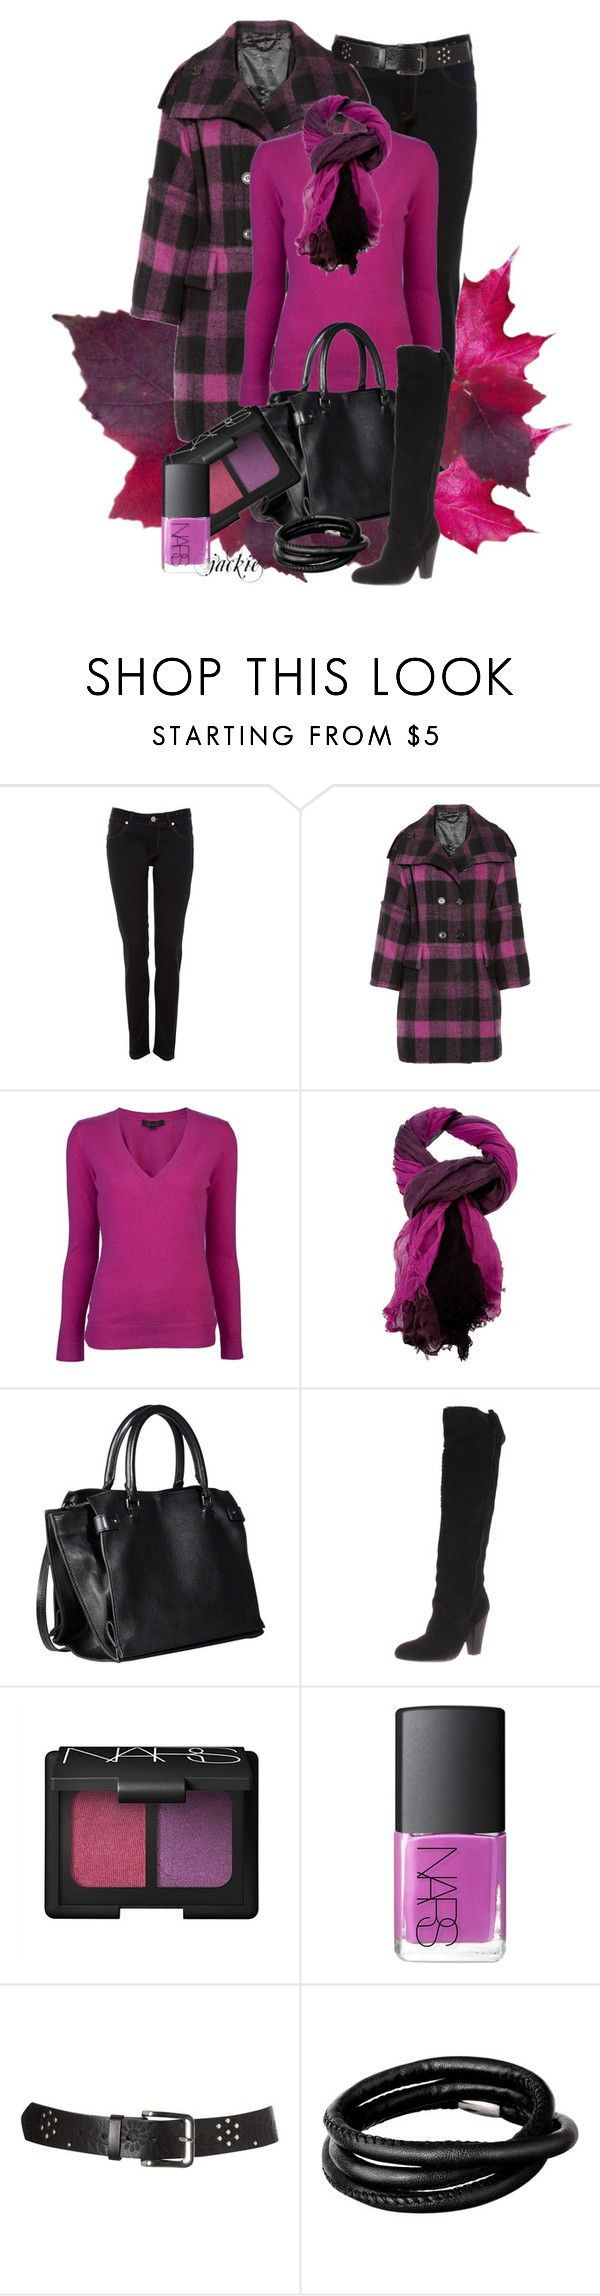 """""""Fall in Plaid"""" by jackie22 ❤ liked on Polyvore featuring A